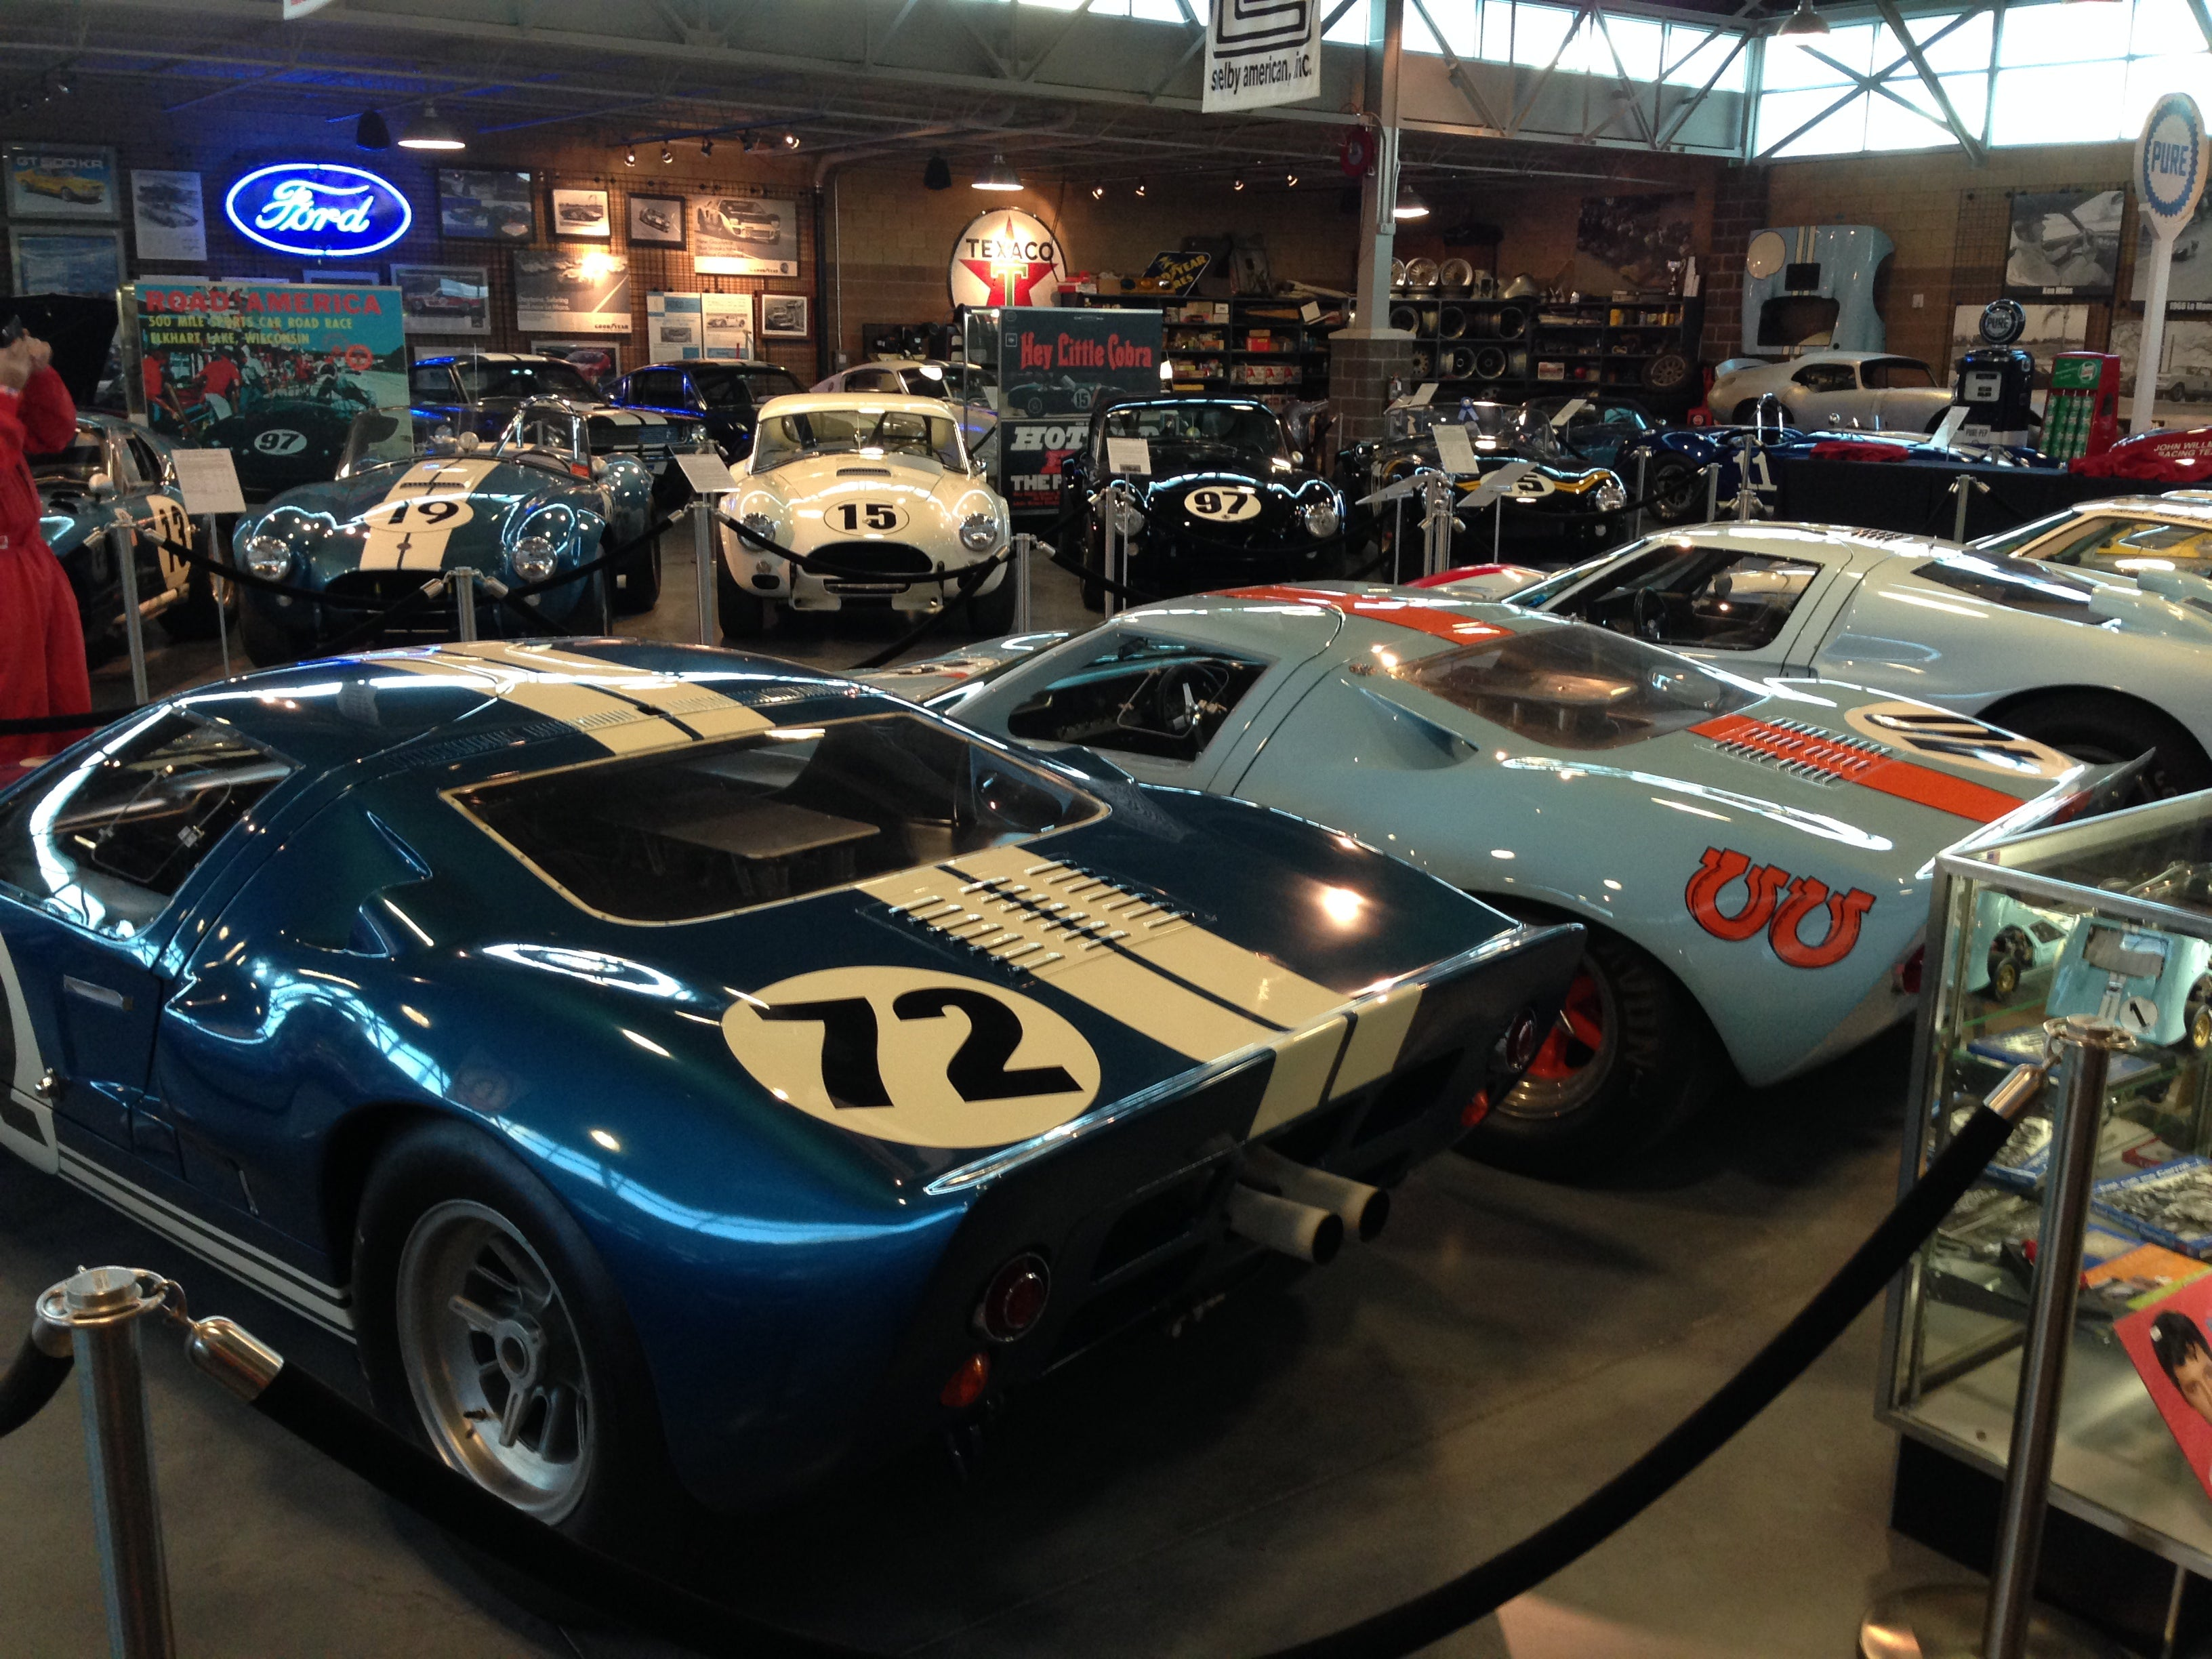 ford gts everywhere for everyone at the ford octane racing school. Black Bedroom Furniture Sets. Home Design Ideas